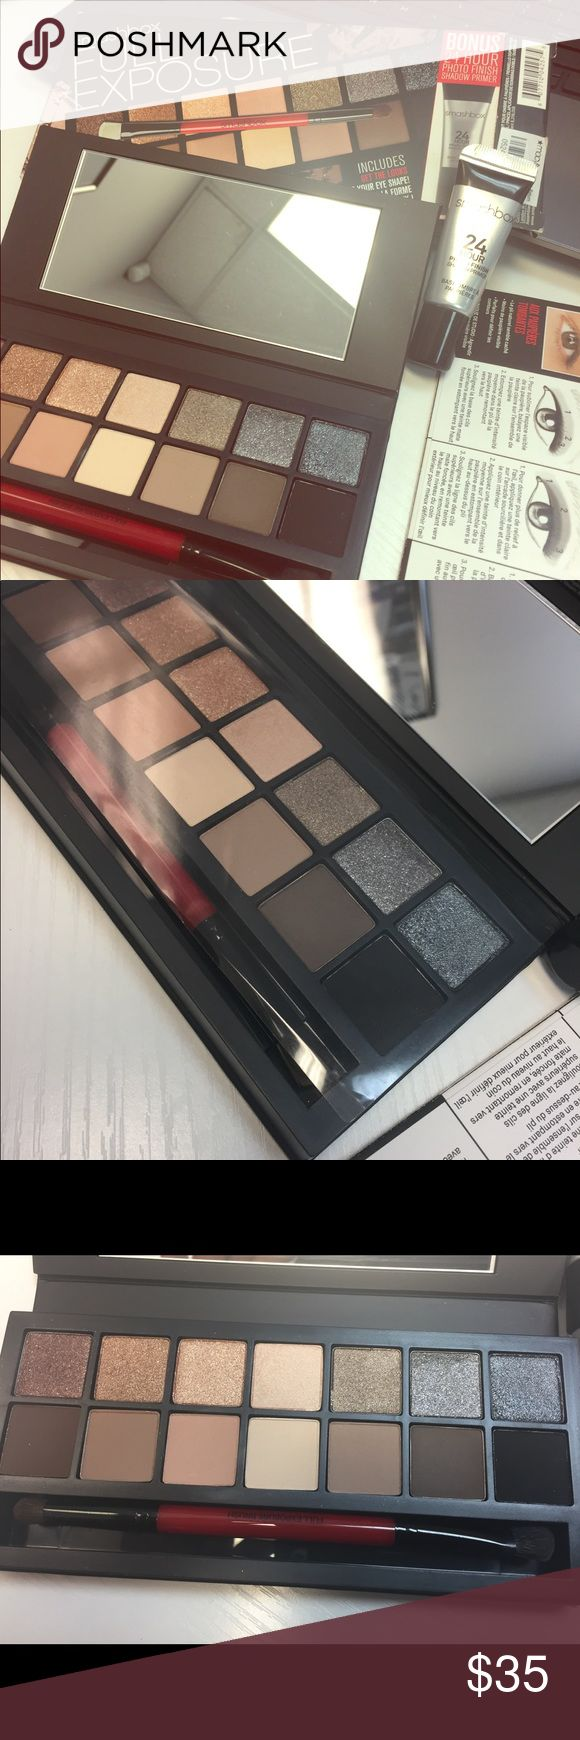 Smashbox Full Exposure palette 🎨 Smashbox Eyeshadow palette. Like new. Only opened to try the glitter shadow once. Great condition🔥🔥 Smashbox Makeup Eyeshadow